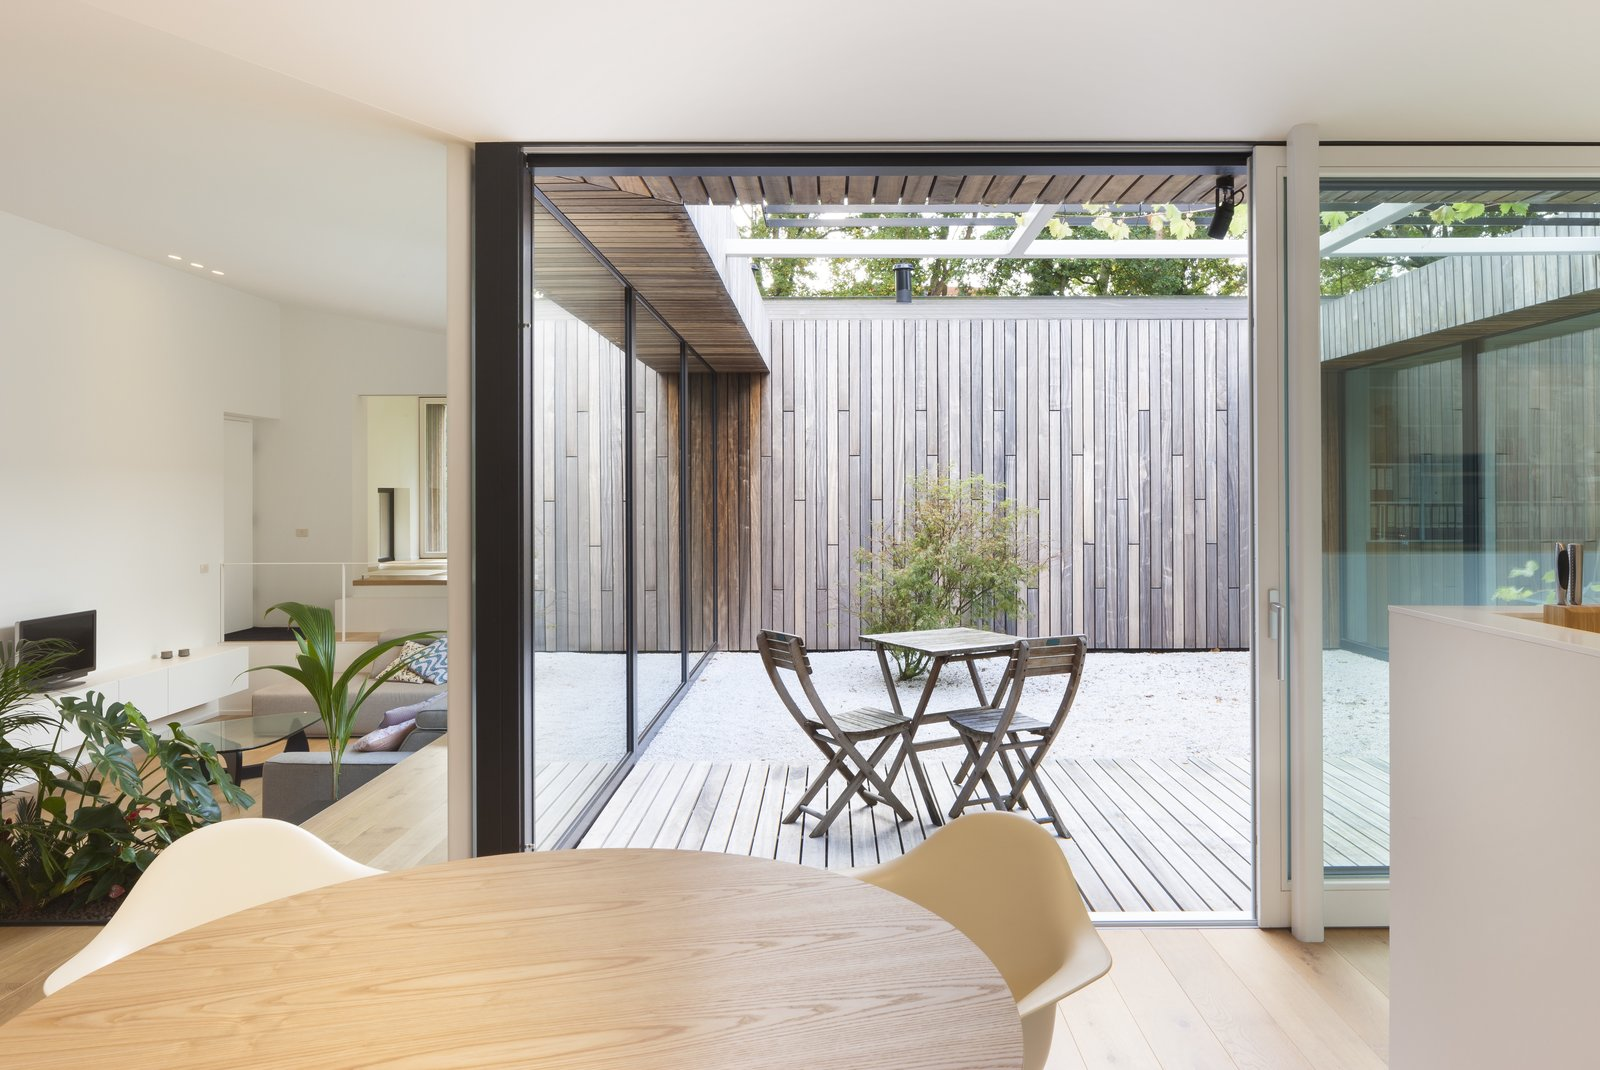 Outdoor, Shrubs, Wood Patio, Porch, Deck, Wood Fences, Wall, Vertical Fences, Wall, Small Patio, Porch, Deck, and Hardscapes The courtyard allows light to penetrate deep into the room.  Best Photos from A Belgian Architect's Courtyard House Offers Work/Life Balance